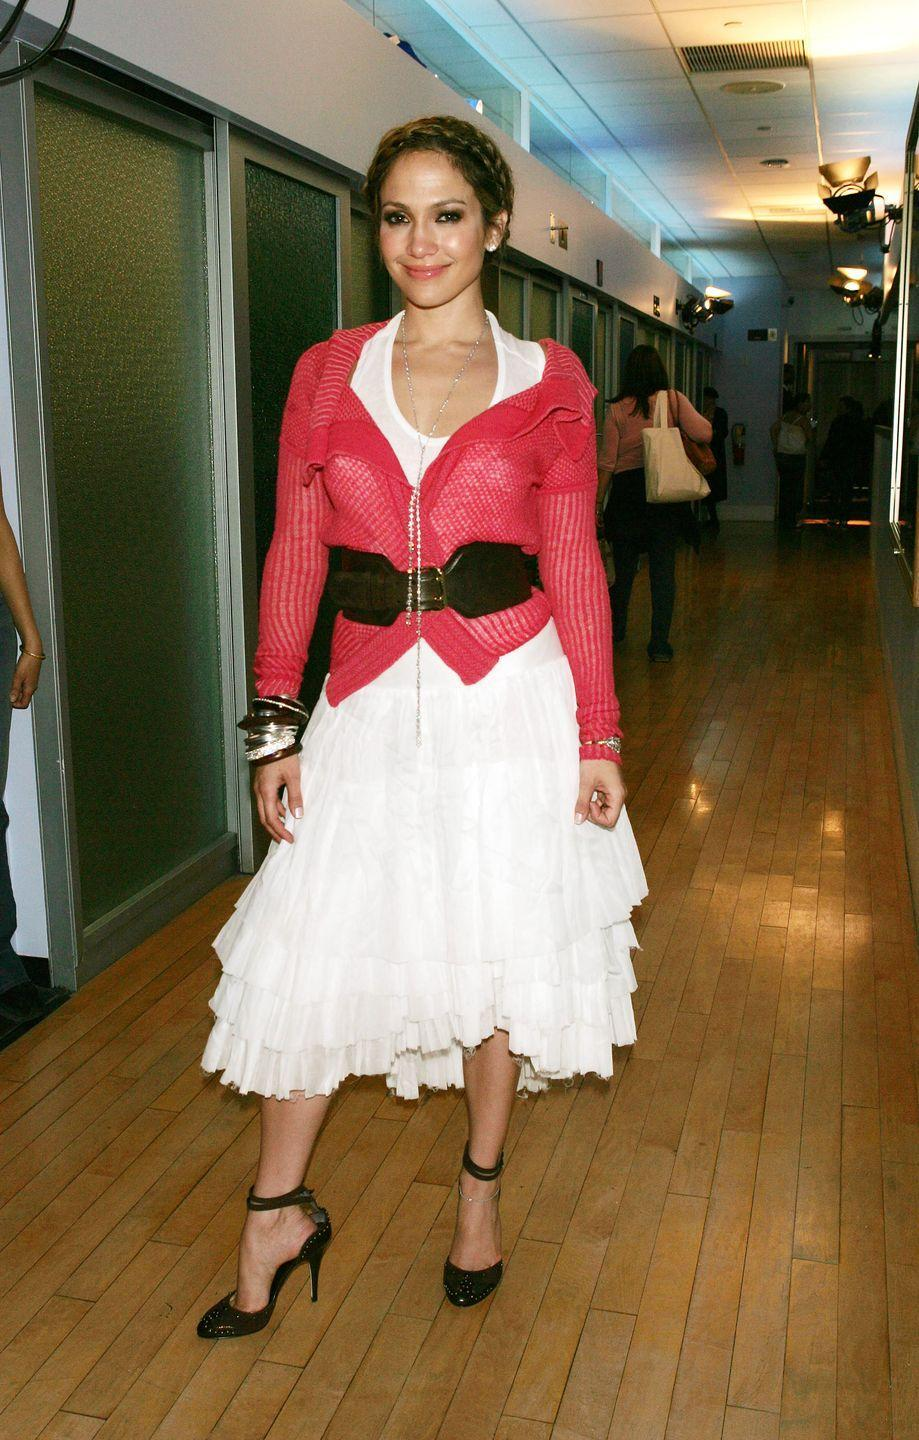 <p>Extremely wide belts were another early 2000s fashion trend that probably won't return. They were typically worn either right in the middle of your waist, over a dress or a shirt (like Jennifer Lopez did here), or they were put over belt loops on low-rise jeans. </p>